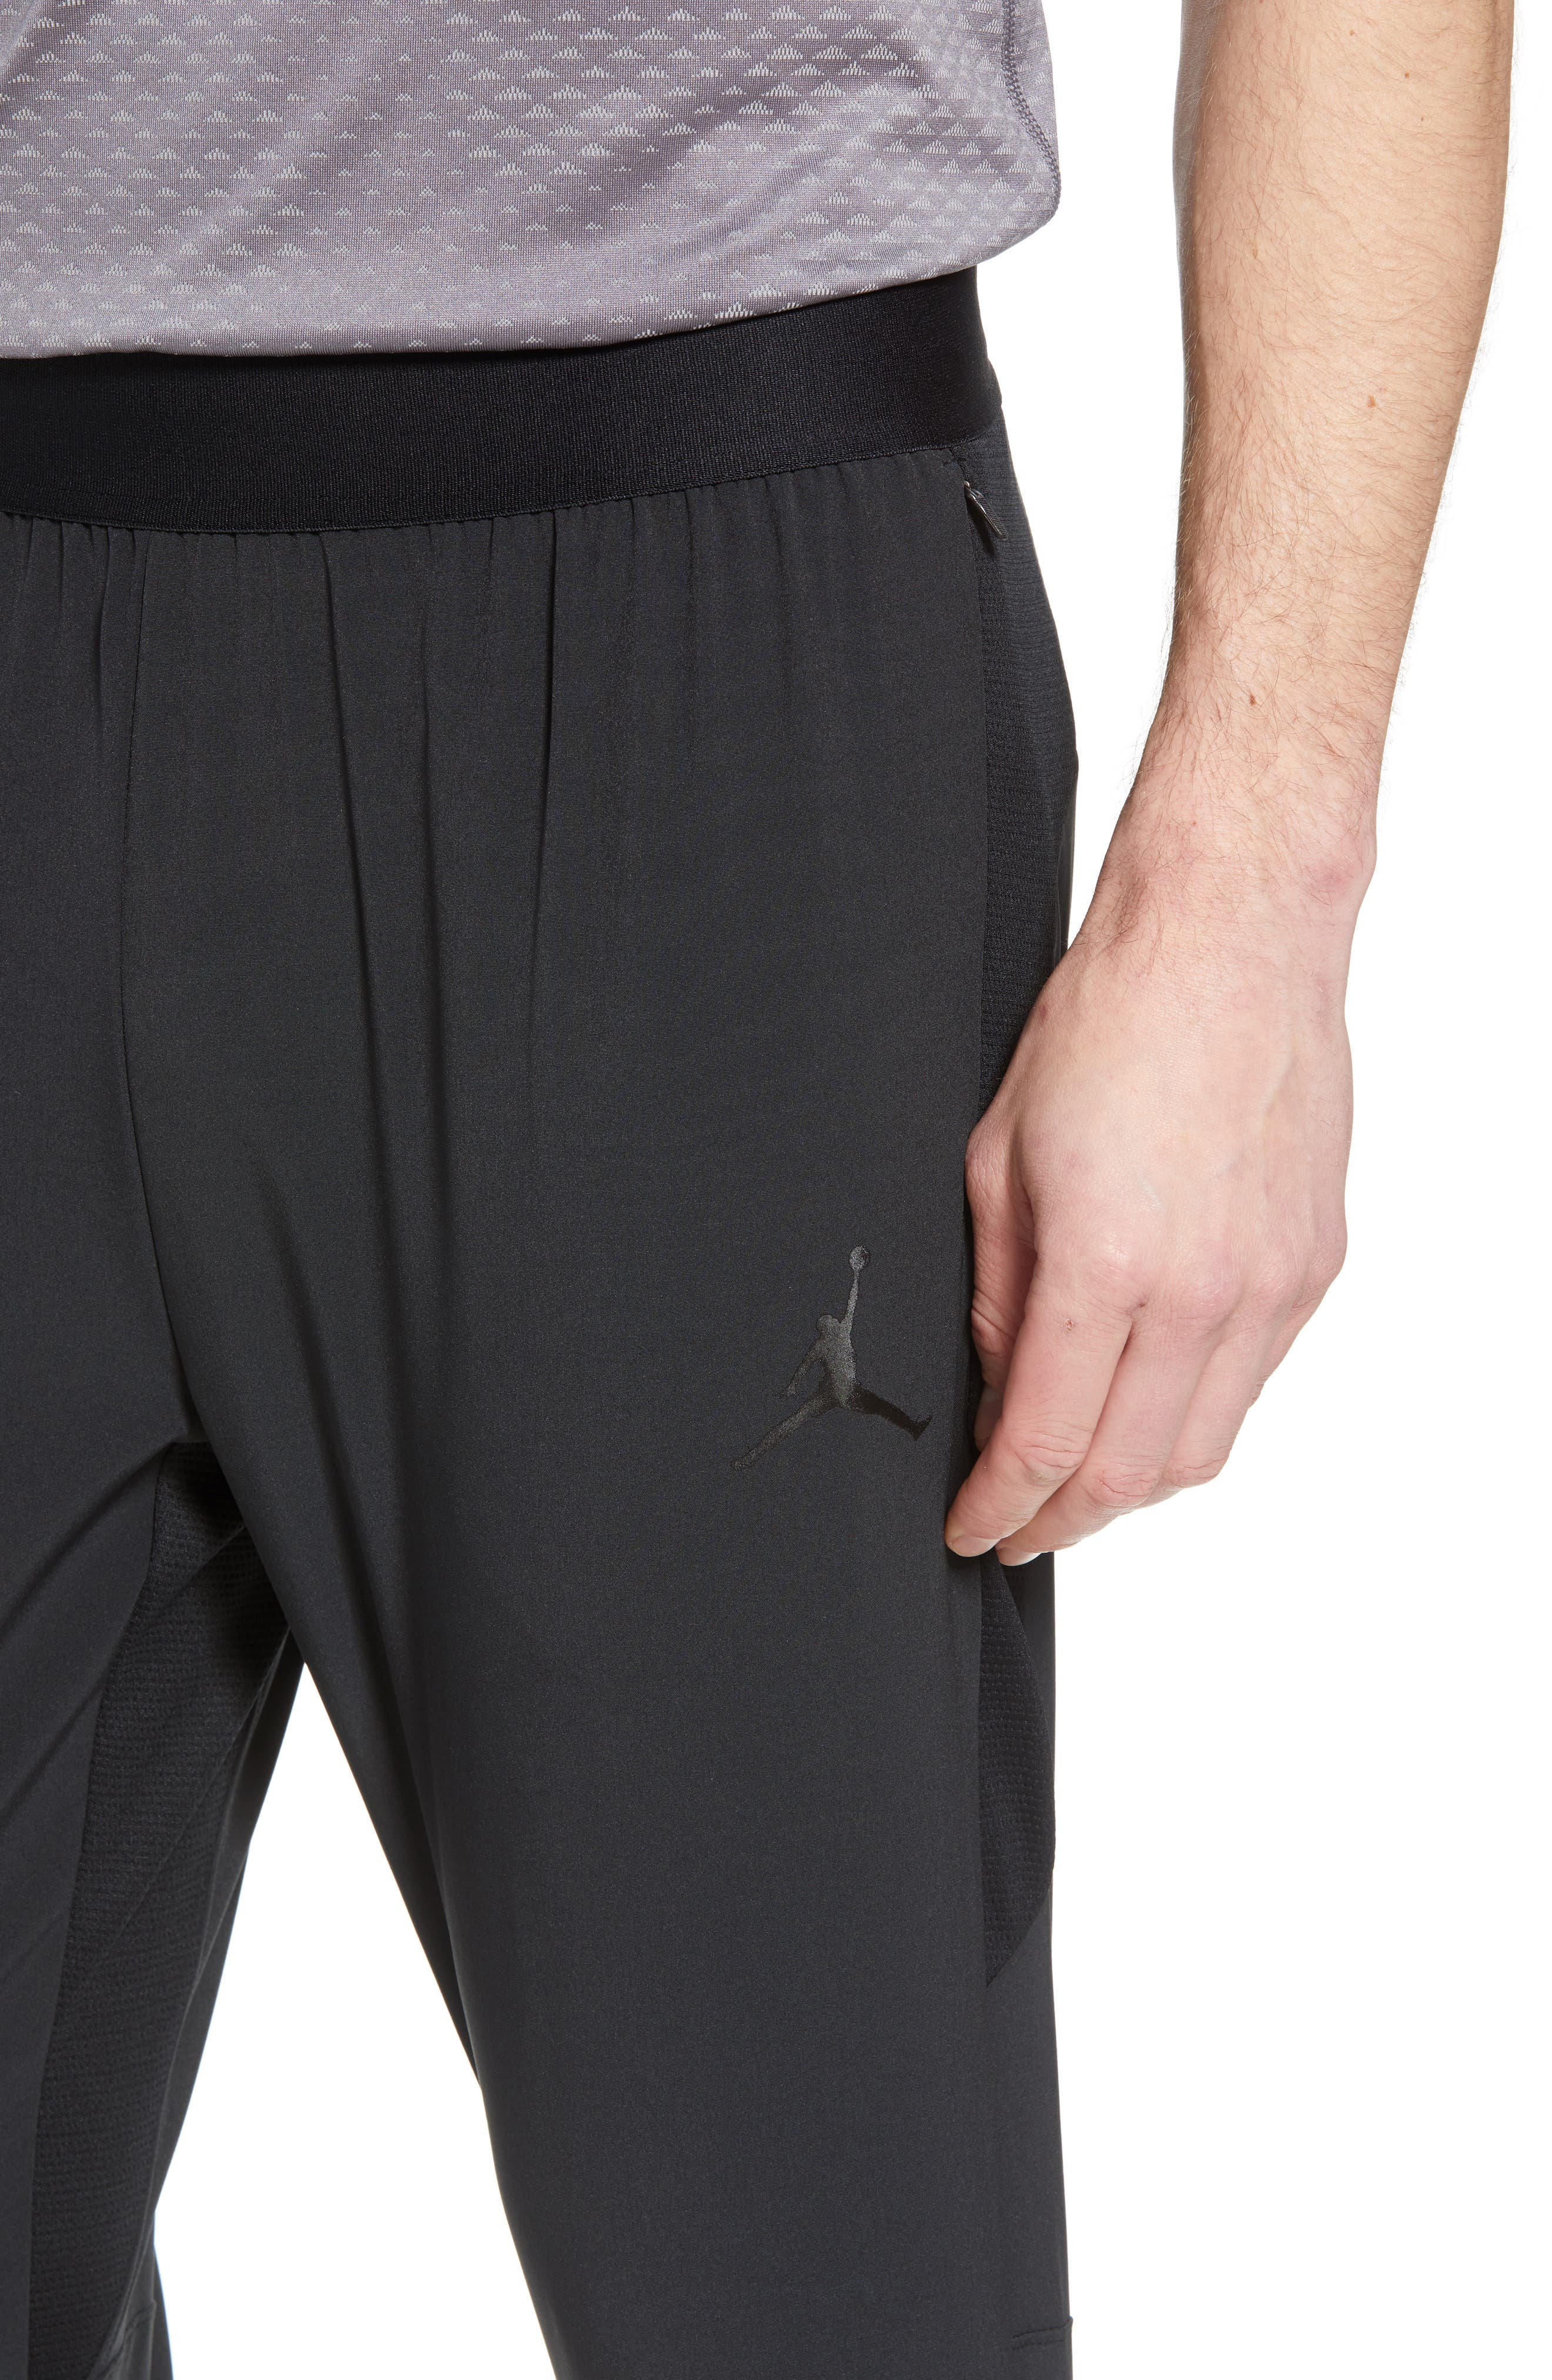 Ult Flight Pants,                             Alternate thumbnail 4, color,                             Black/ Black